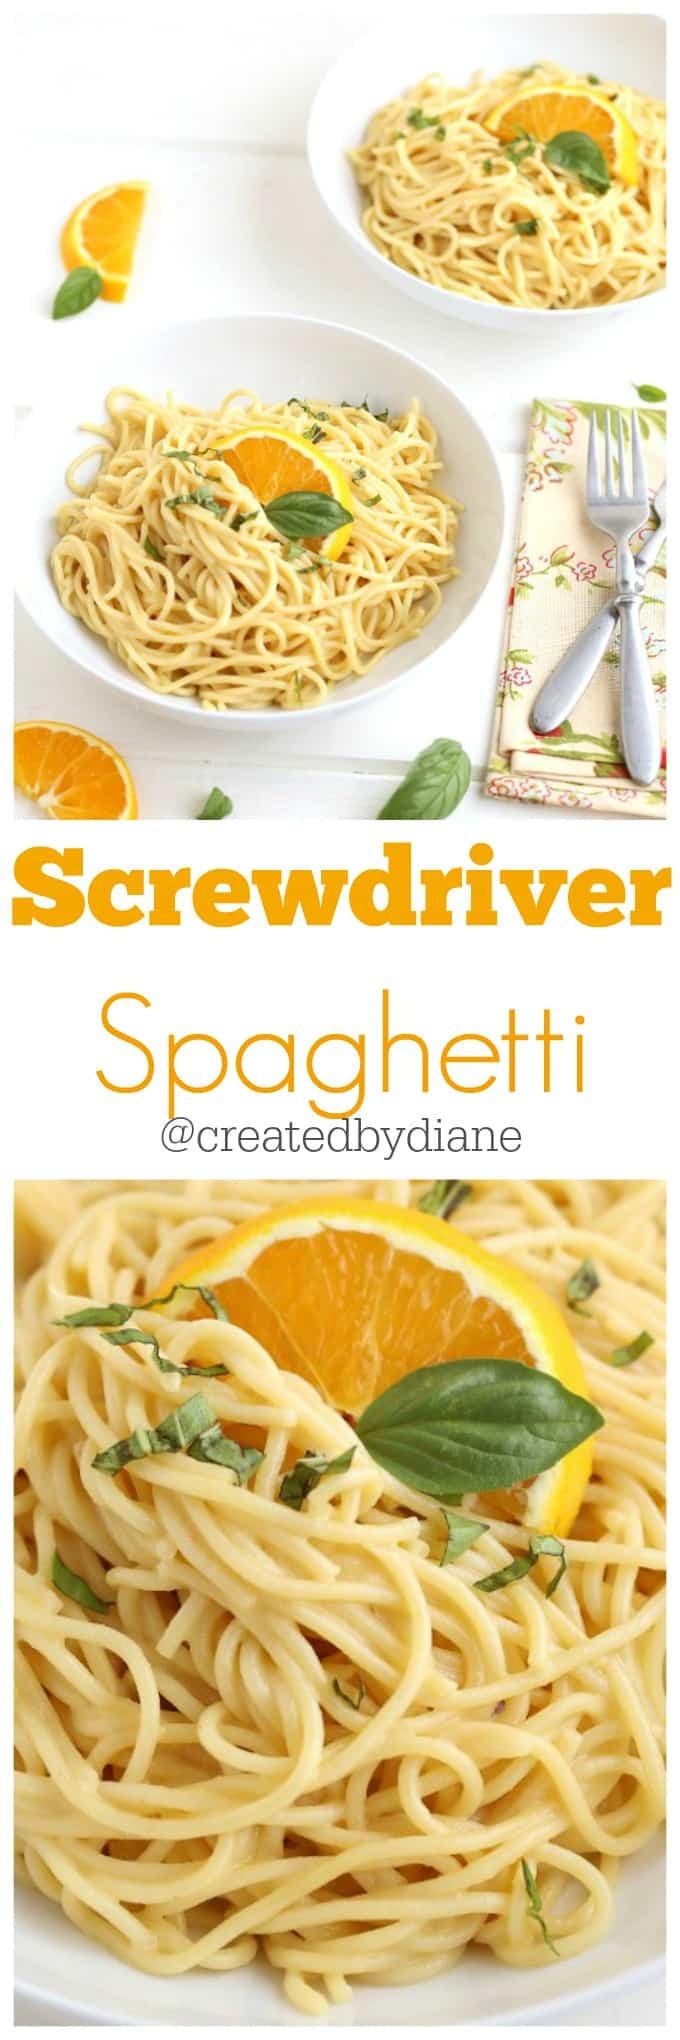 screwdriver spaghetti delicious